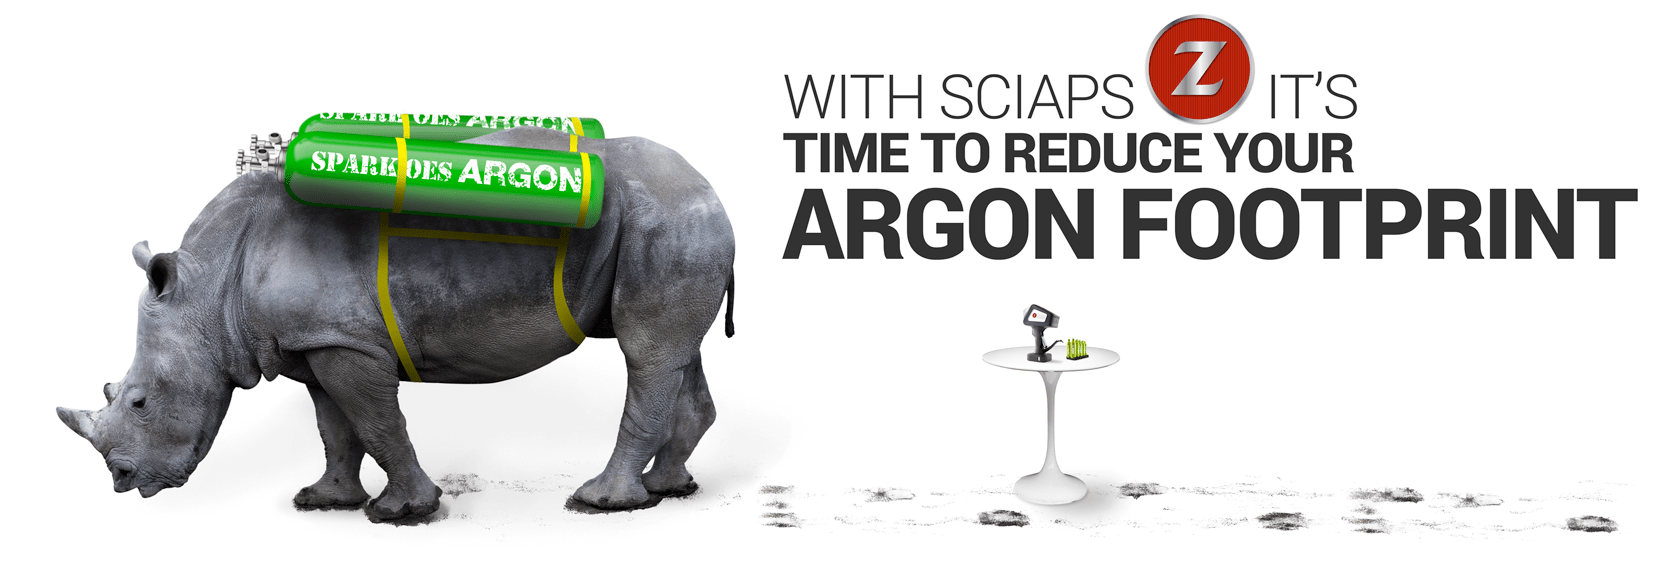 With SciAps Z it's time to reduce your Argon Footprint